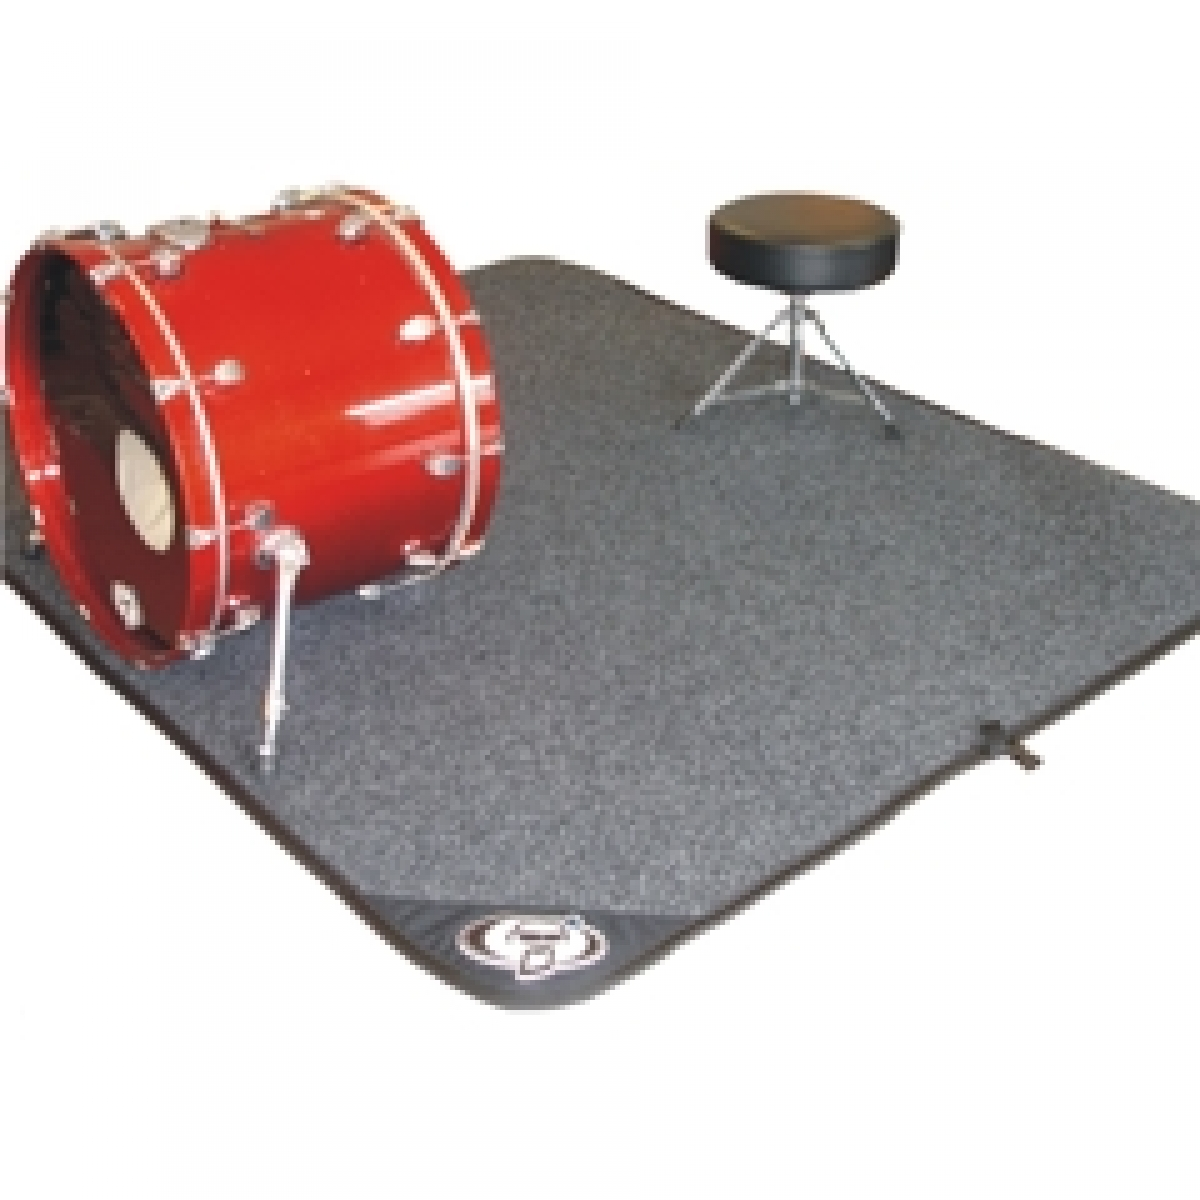 protection racket drum mat x 1 6m 9027 00 at promenade music. Black Bedroom Furniture Sets. Home Design Ideas